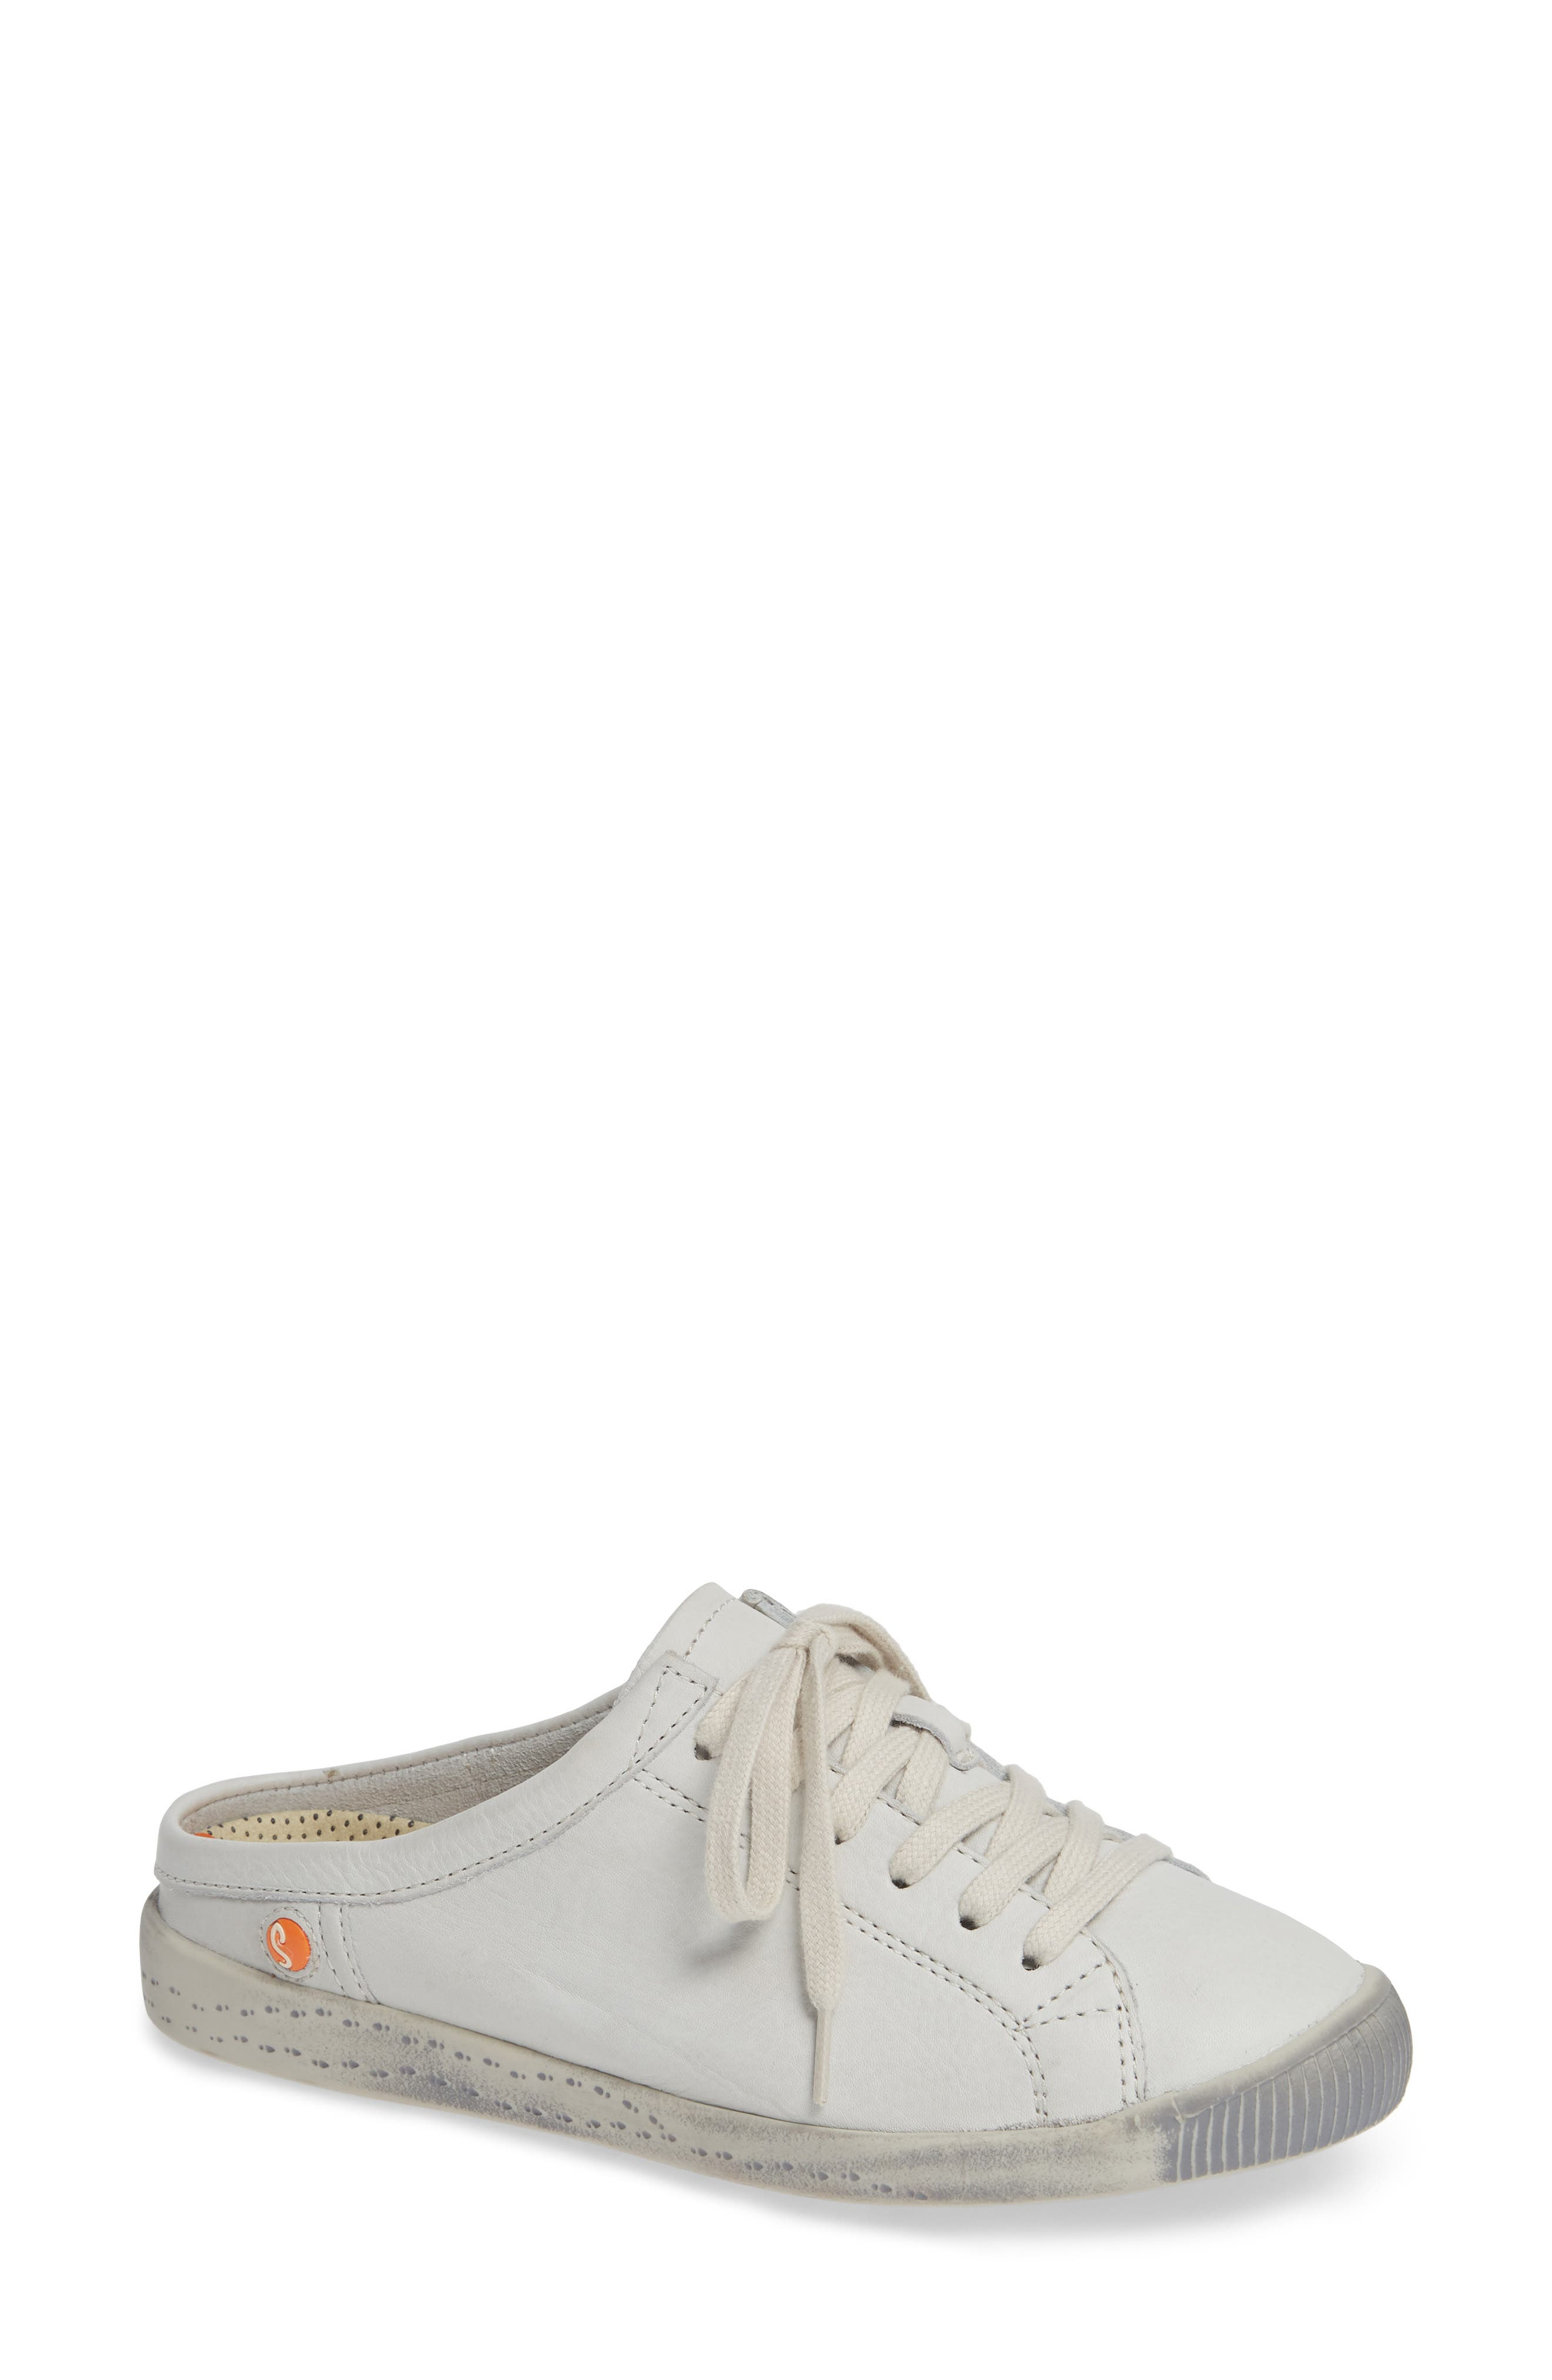 Softinos By Fly London Ije Sneaker Mule - White